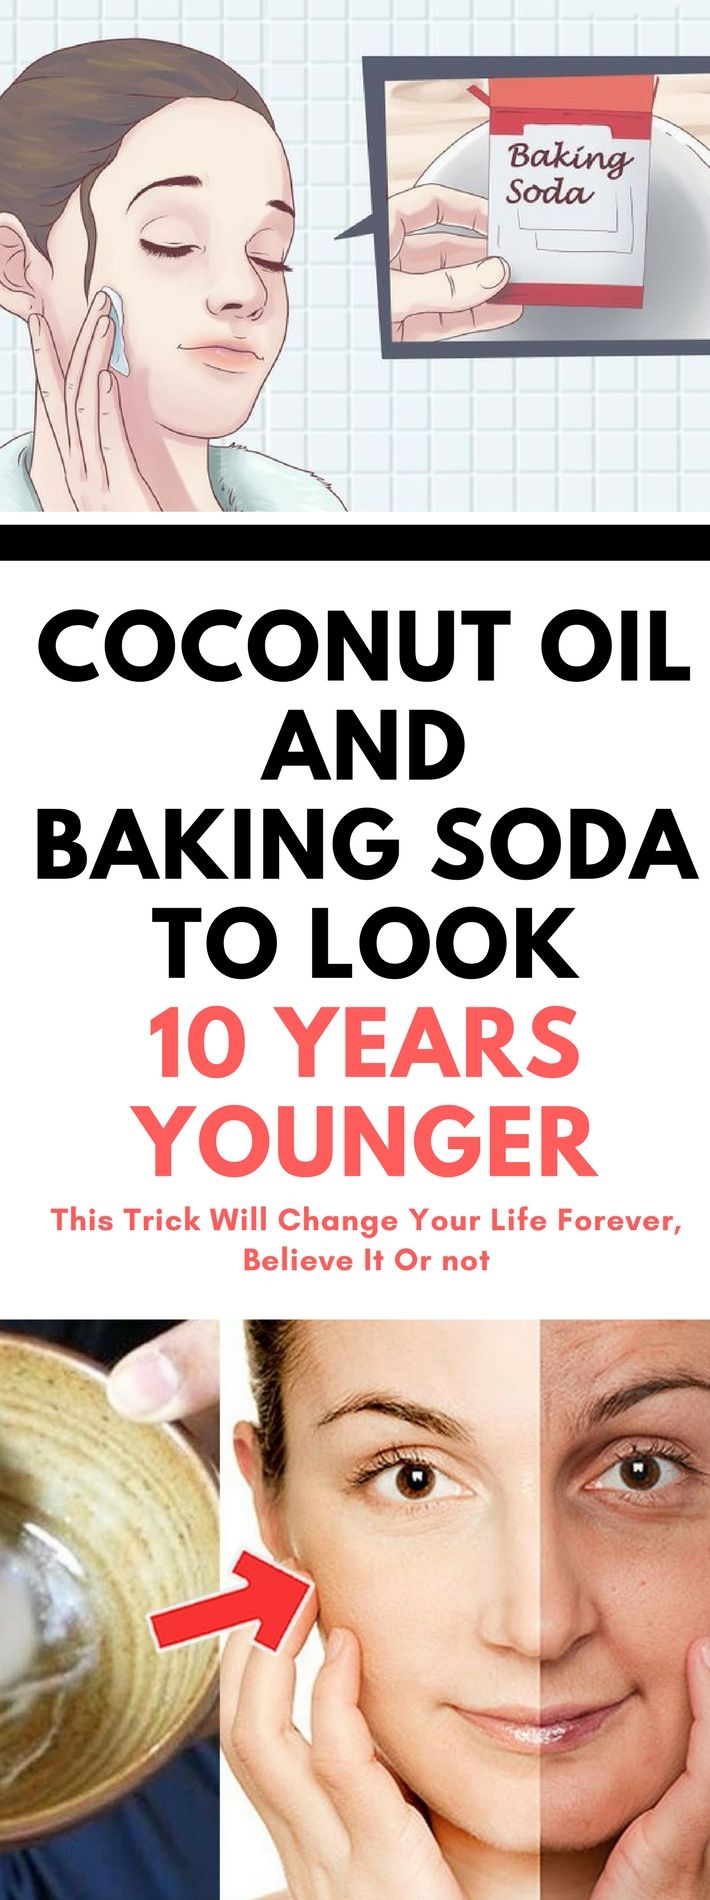 This Is How To Use Coconut Oil And Baking Soda To Look 10 Years Younger..!!!! !!!